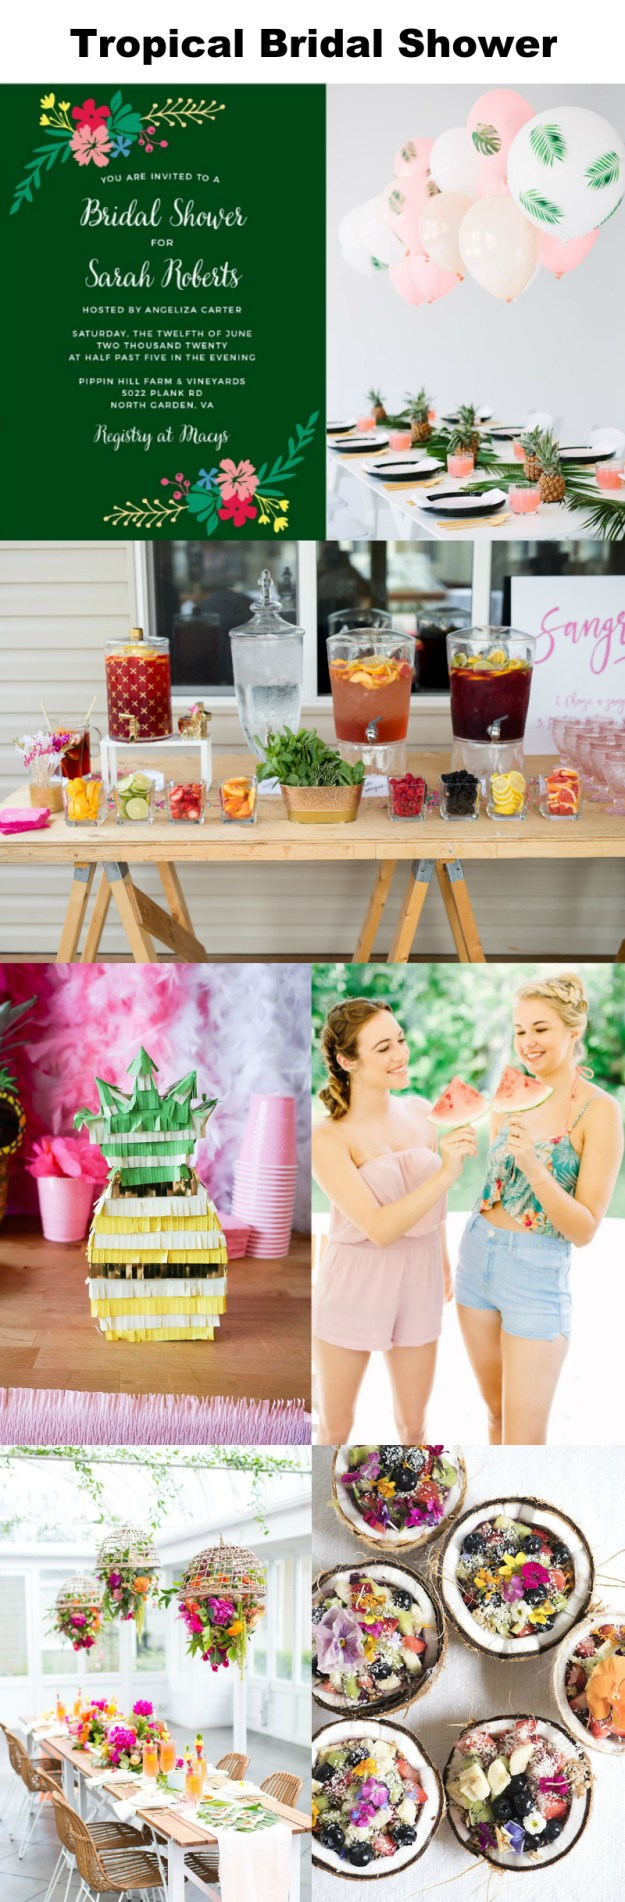 Plan a tropical bridal shower with these ideas: Start with a completely custom bridal shower invitation from Basic Invite, add a sangria bar and decorate with plenty of fresh summer fruits and flowers